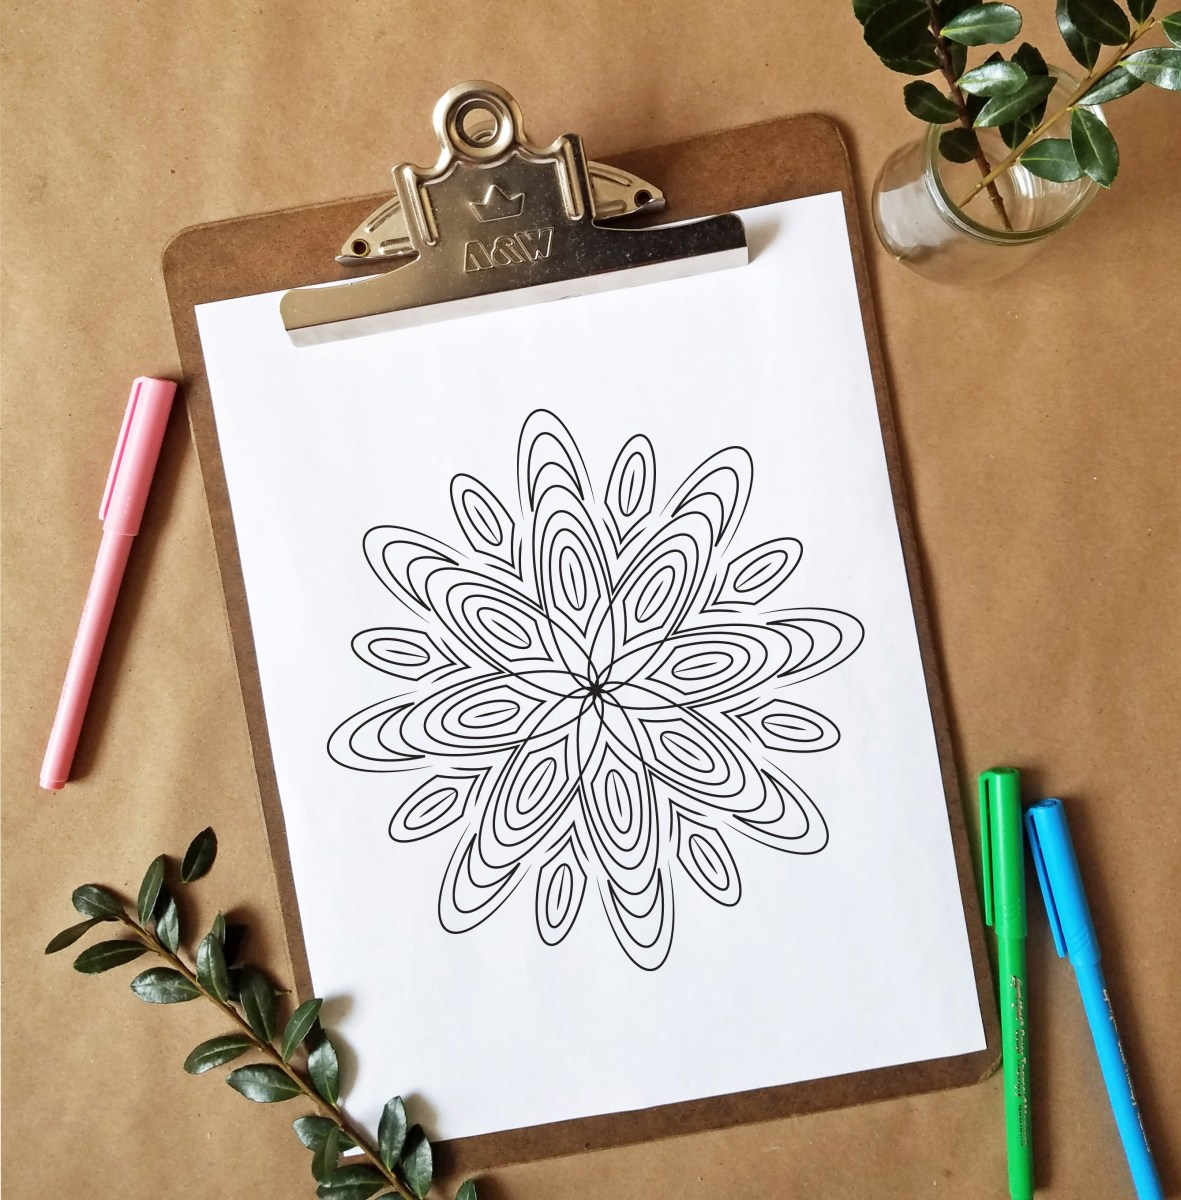 FREEbie Friday - Coloring Page 9